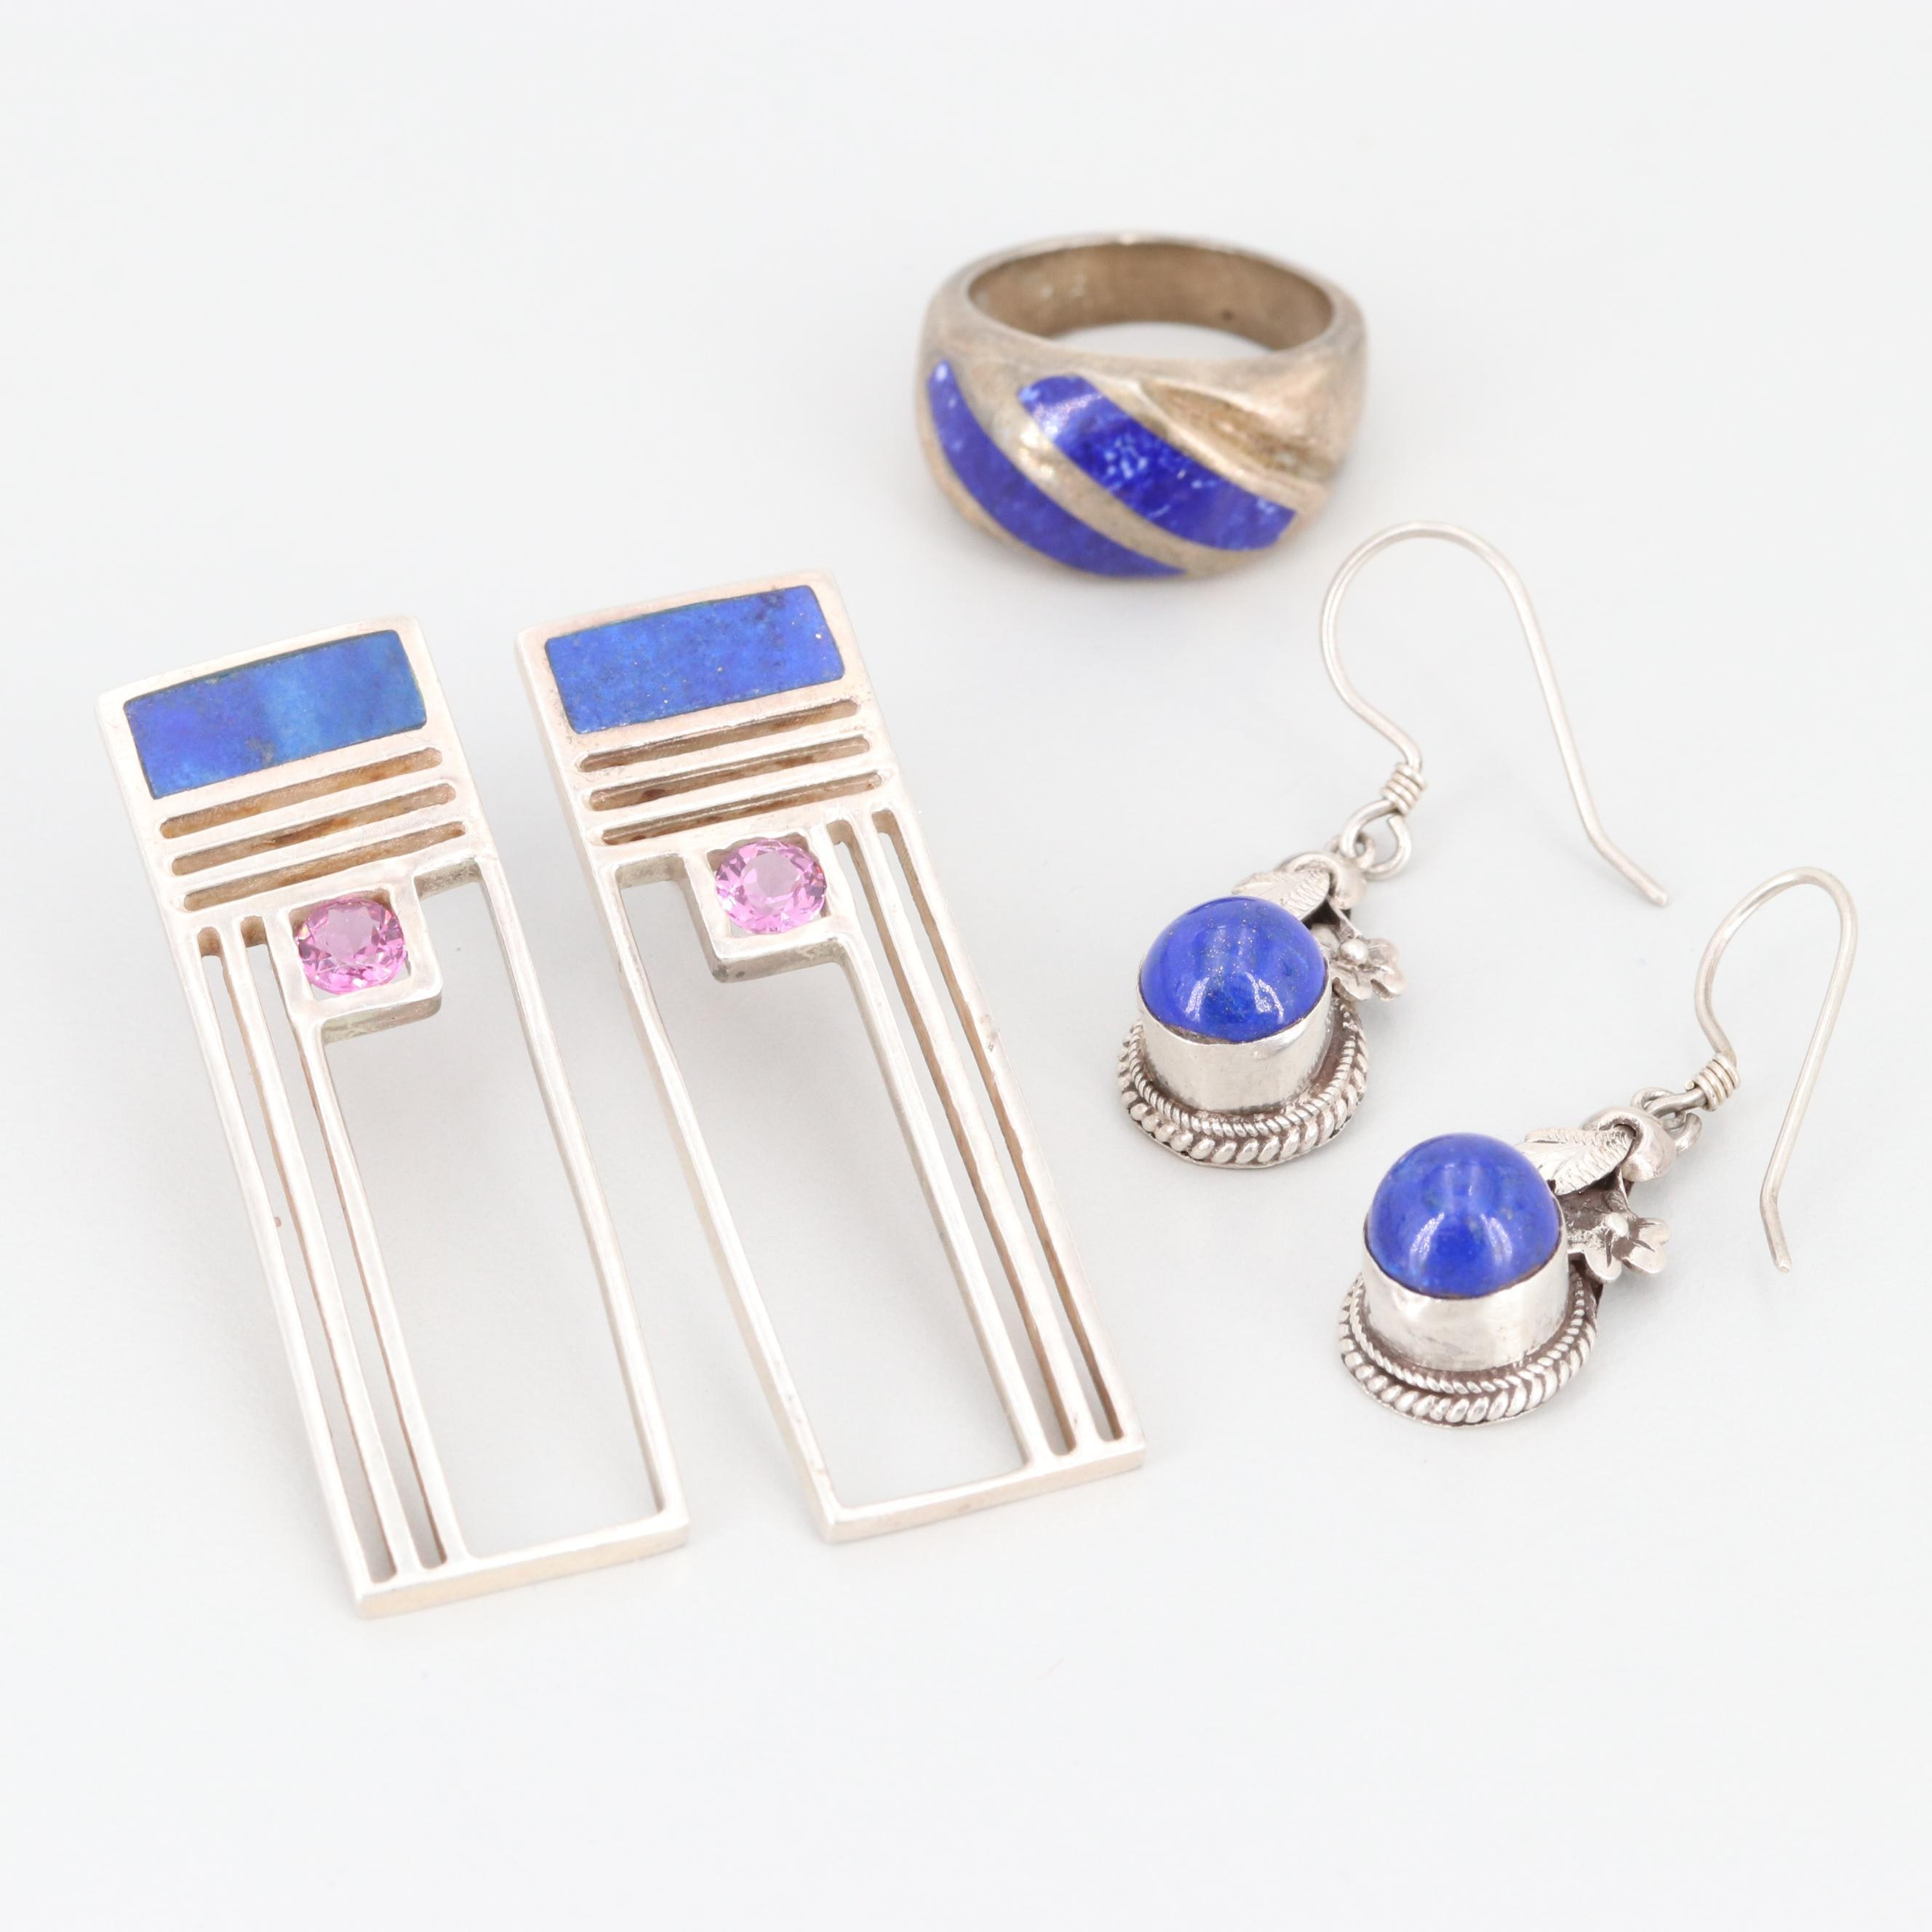 Sterling Silver Earrings and Mexican Ring Including Lapis Lazuli and Sodalite